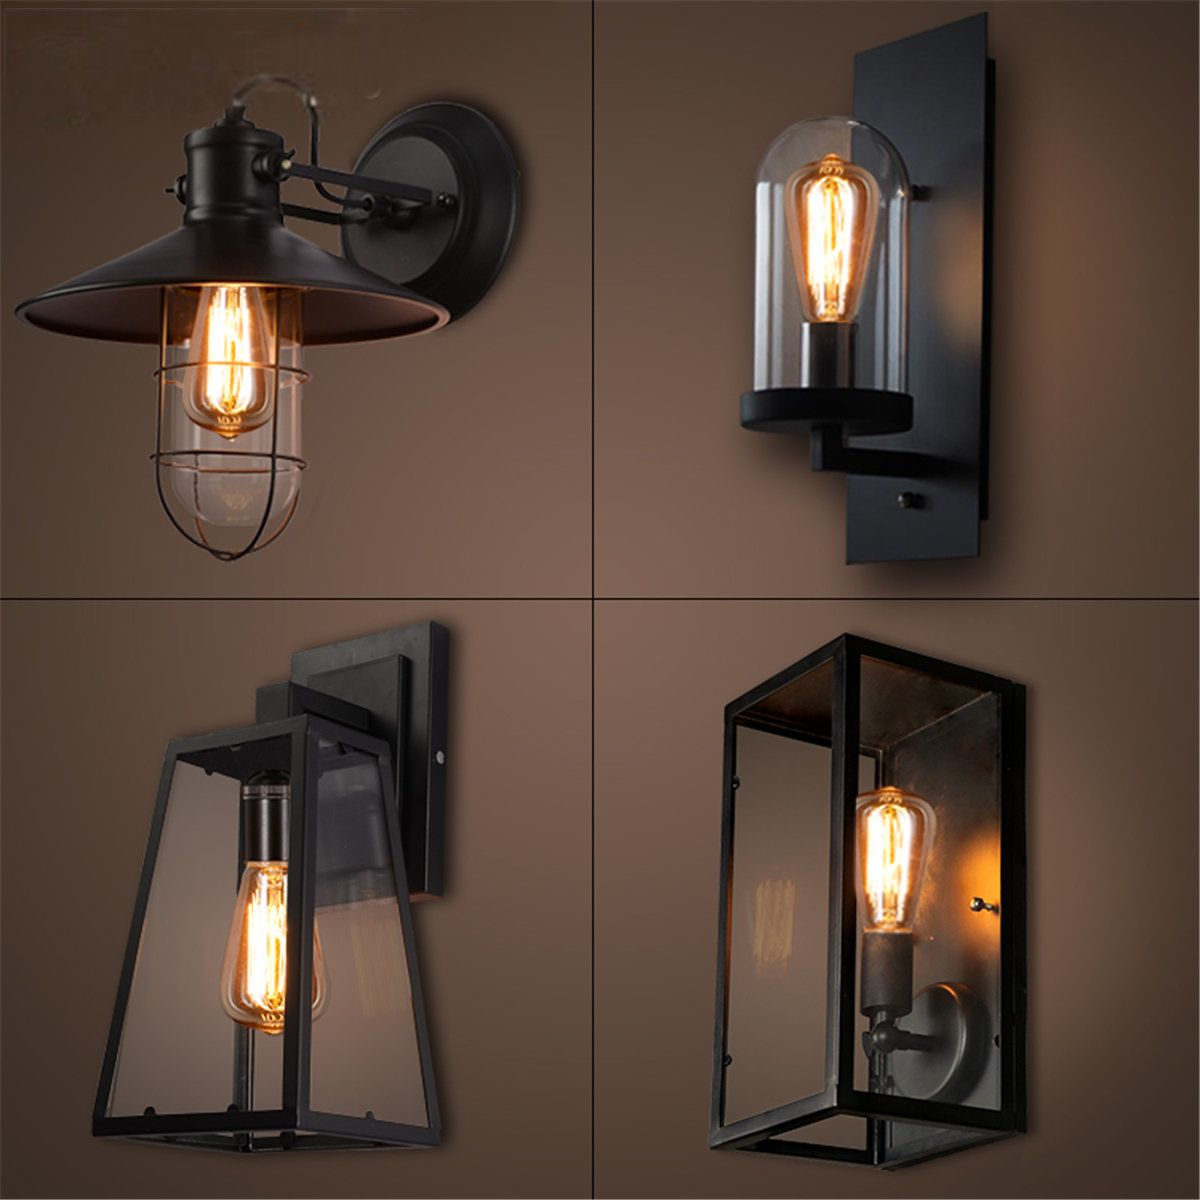 Outdoor Vintage Wall Sconce Lantern Lamp Stainless Steel Porch Yard Light Black Wall Sconce Lantern Outdoor Wall Lamps Vintage Industrial Wall Light